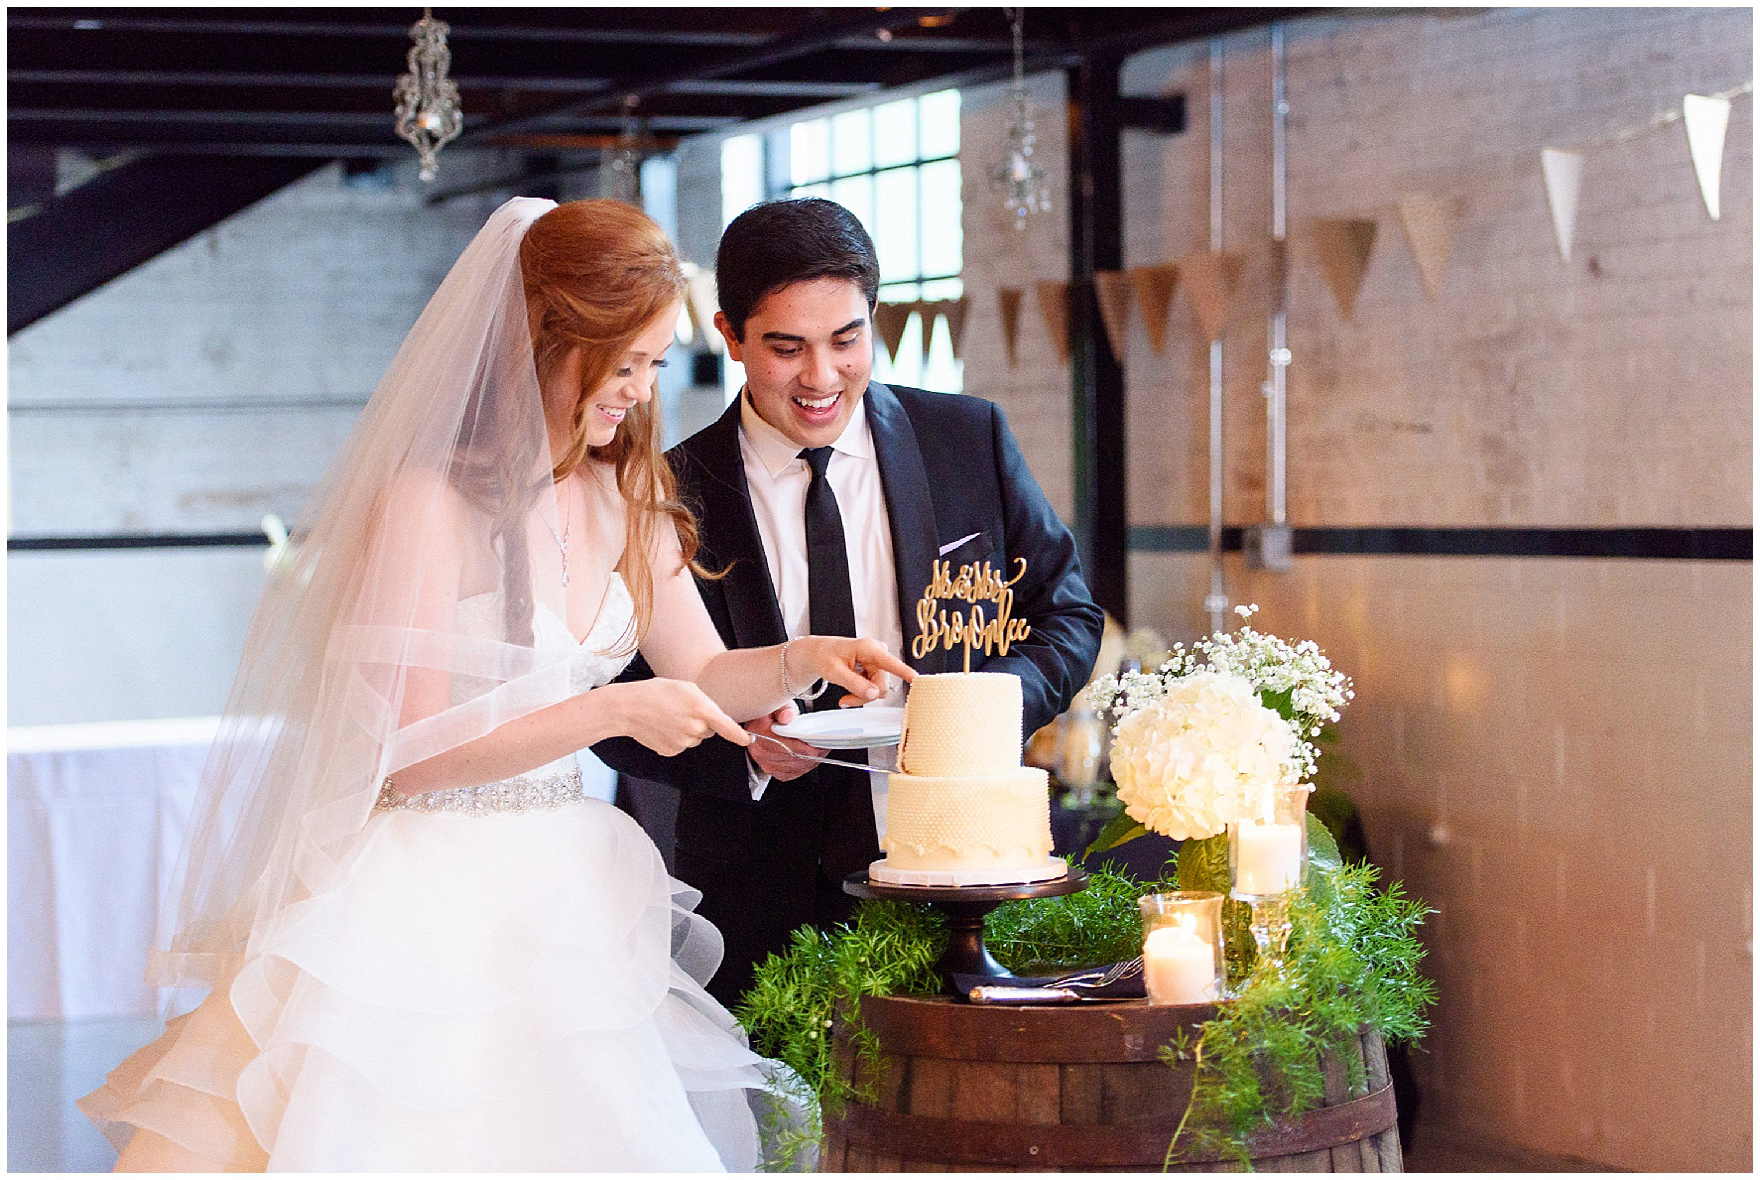 The bride and groom cut the cake during their wedding reception at The Brick in South Bend, following a University of Notre Dame wedding.